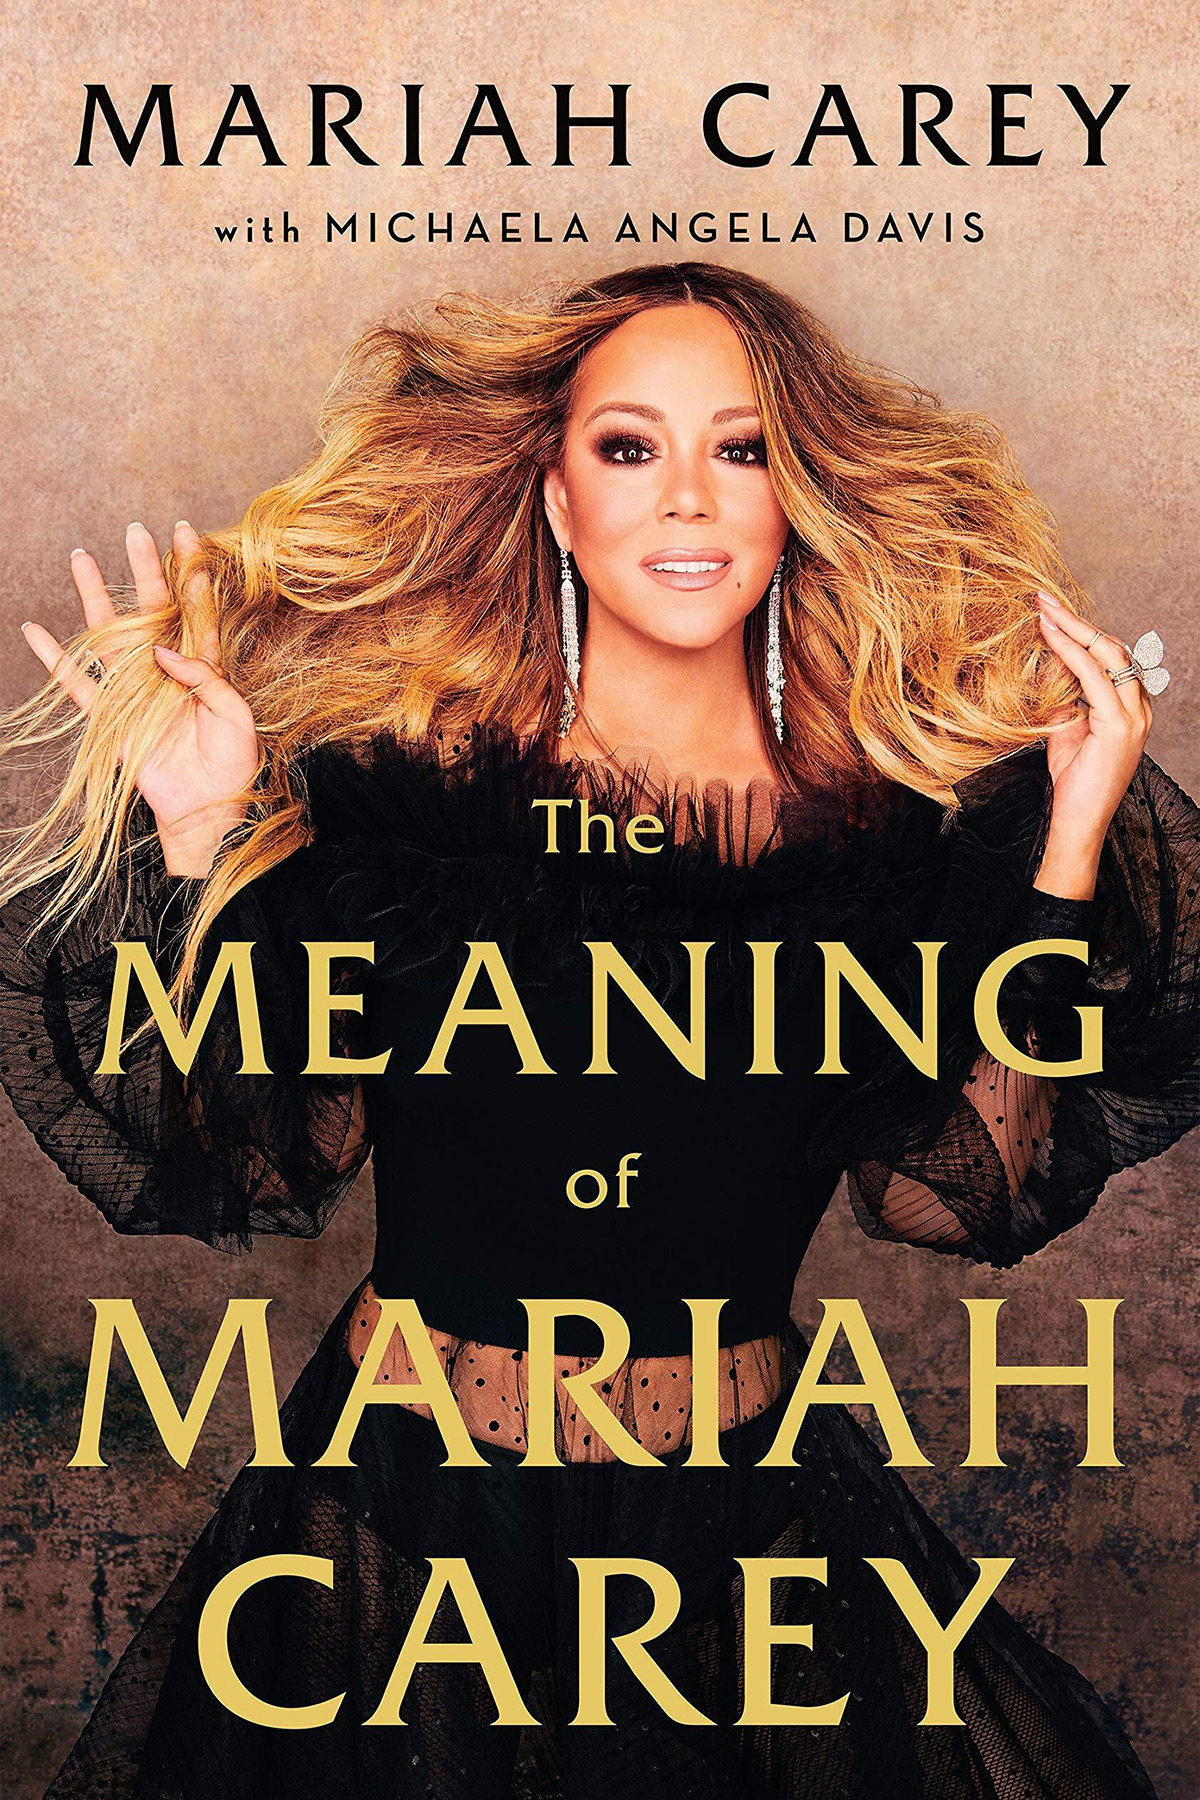 mariah carey book